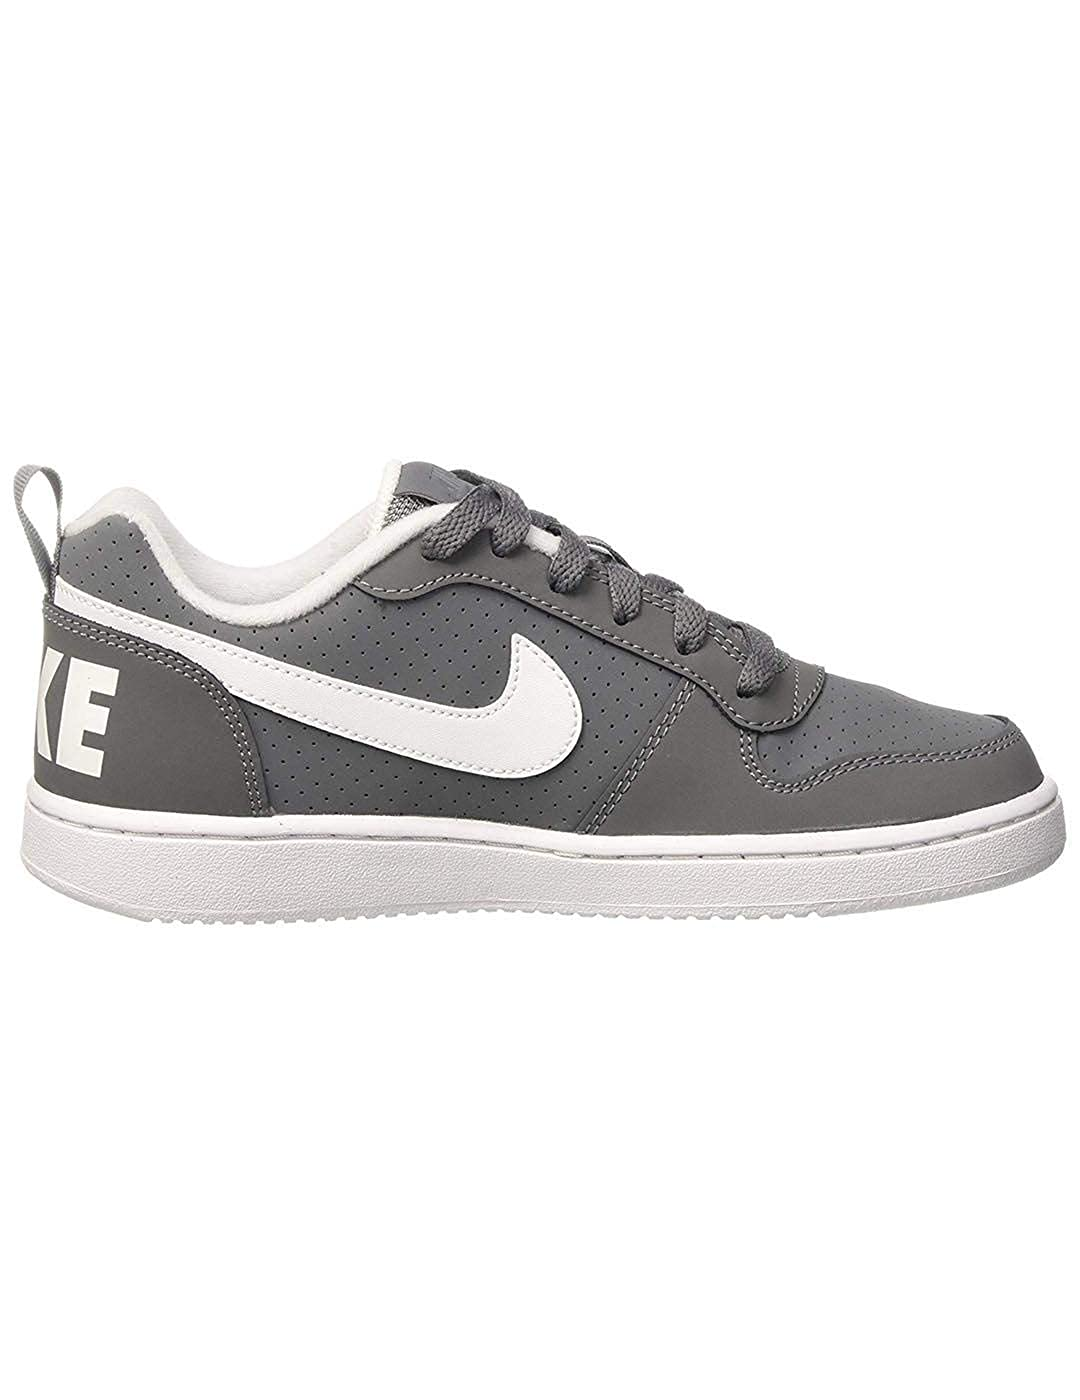 TALLA 36 EU. Nike Court Borough Low (GS), Zapatillas de Baloncesto para Niños